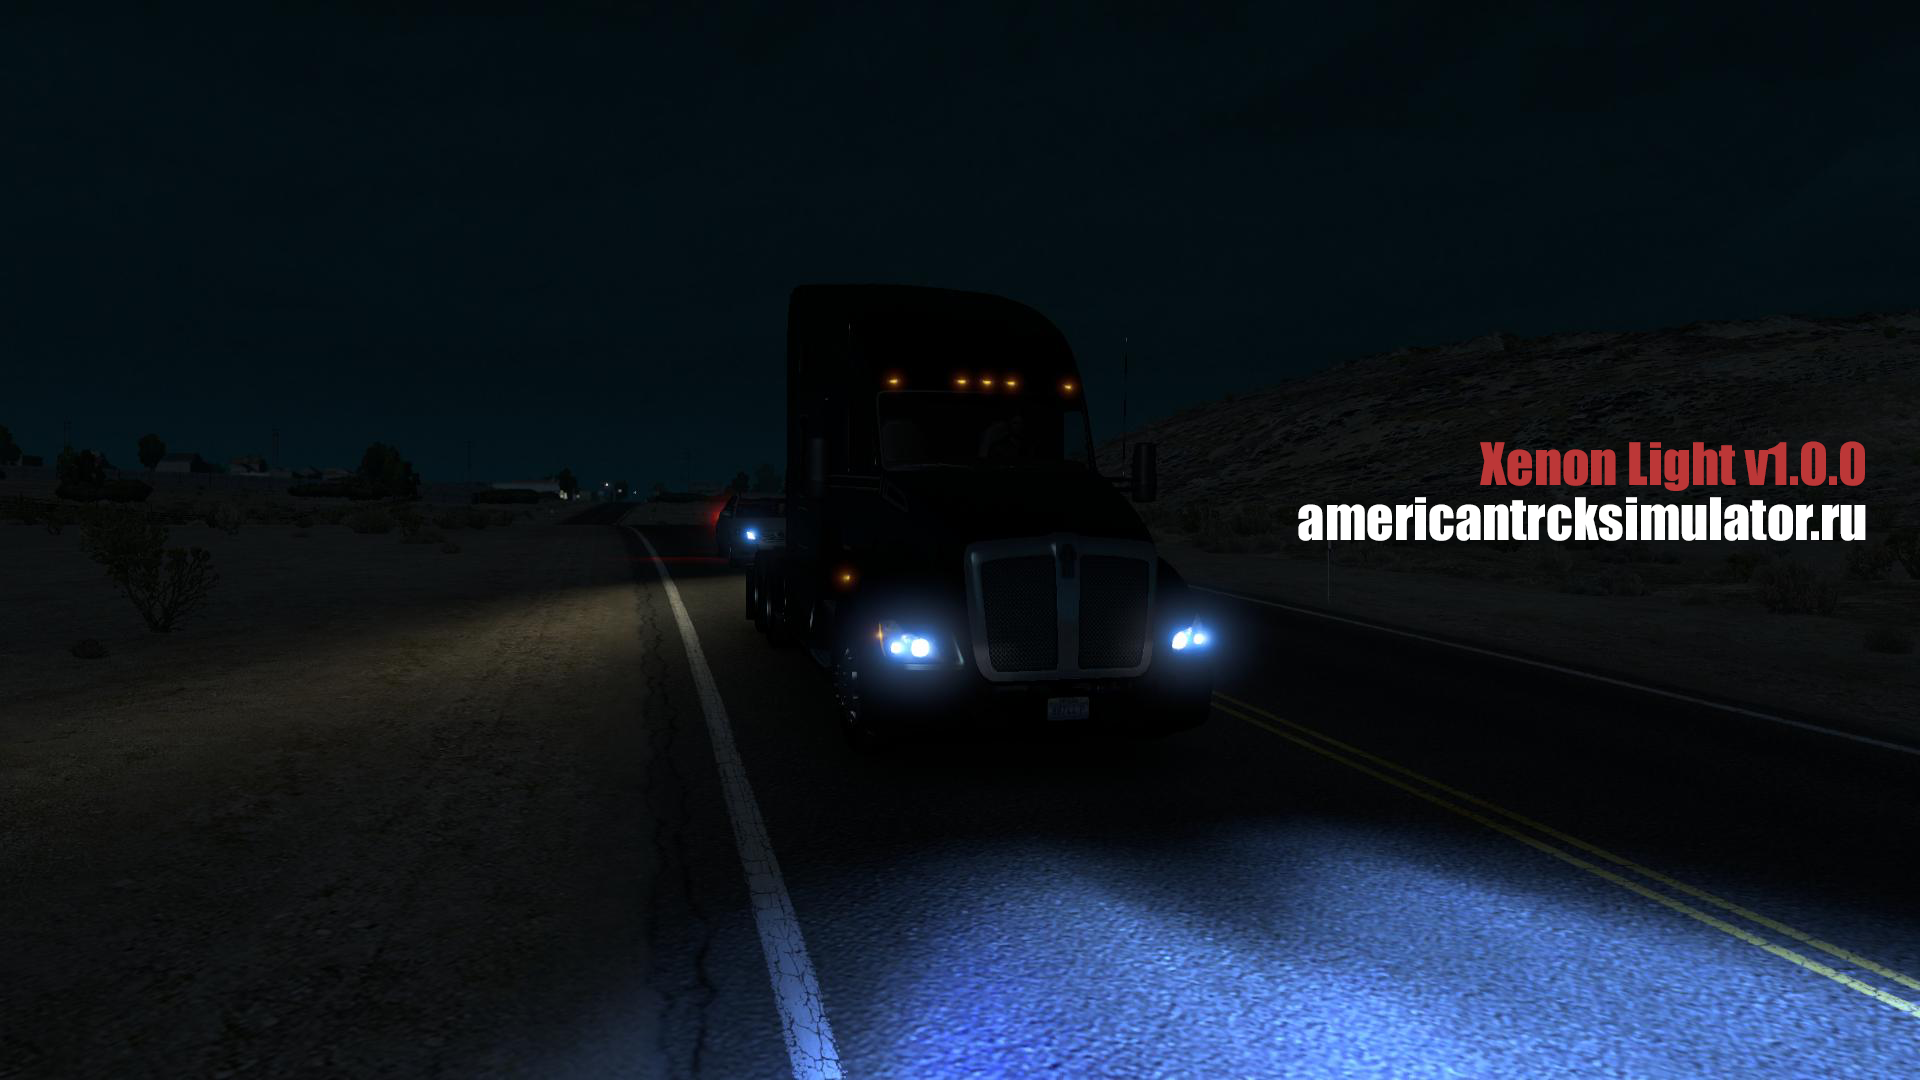 American Truck Simulator Xenon Light v1.0.0